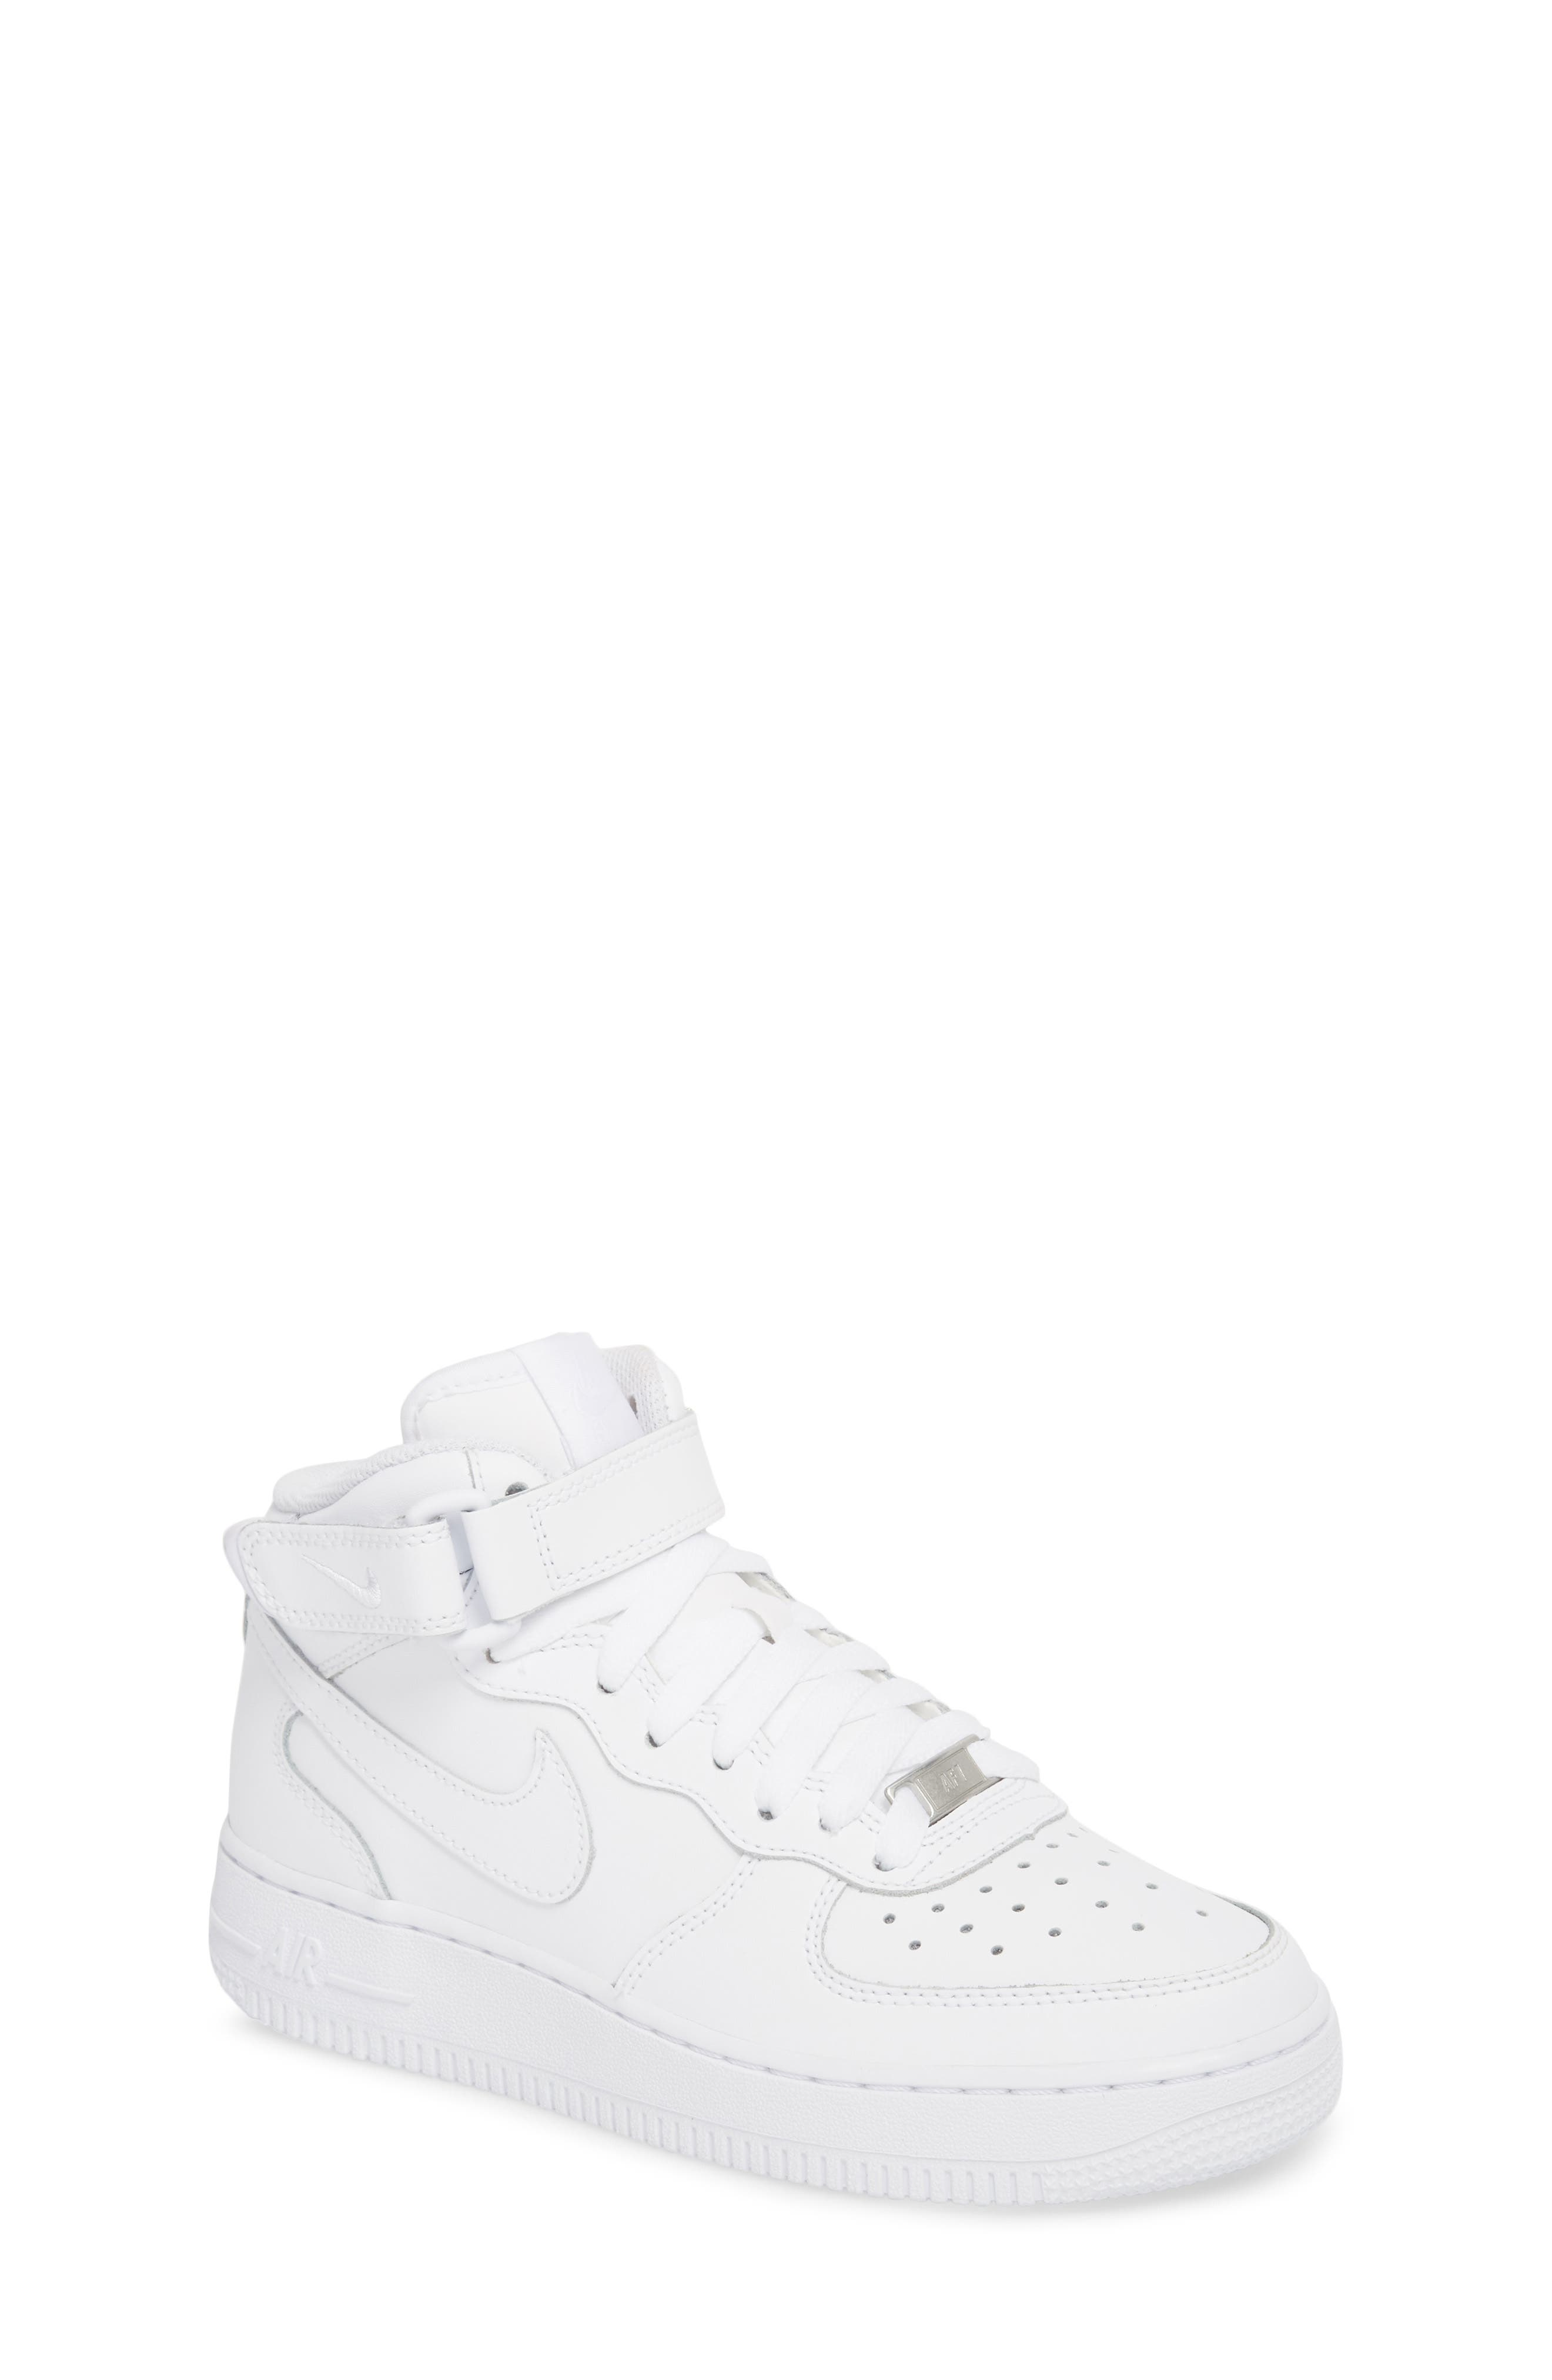 Nike Air Force 1 Mid Top Sneaker (Big Kid)